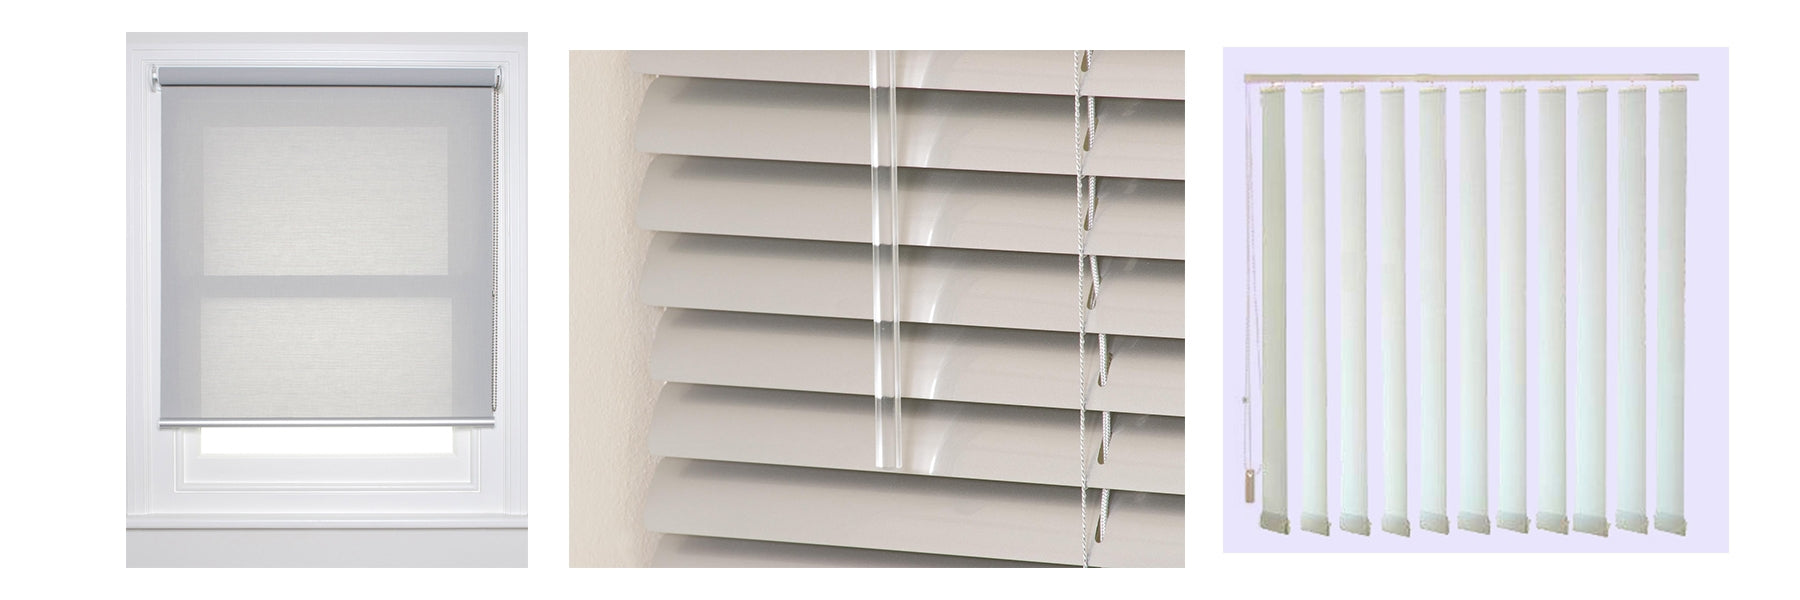 Blinds by Property Letting Furniture Solutions PLFS